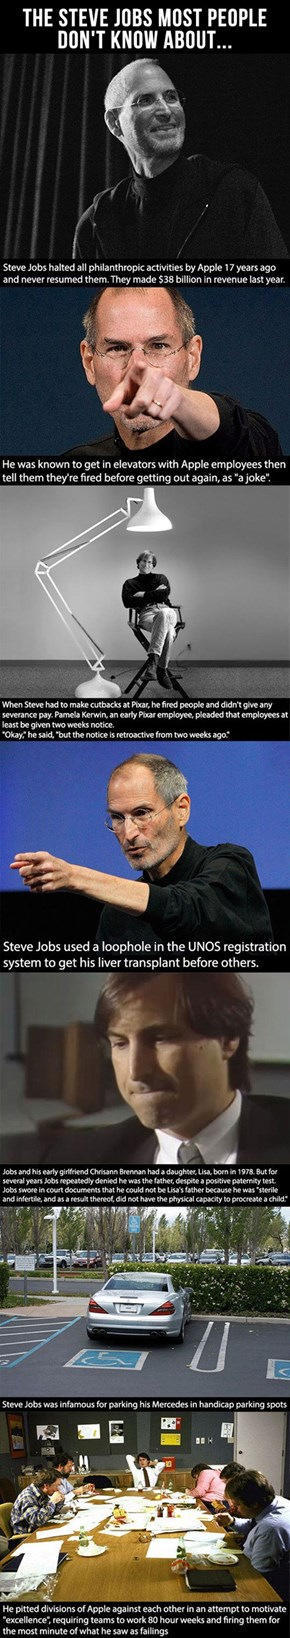 Steve Jobs Was Actually a Massive Douche